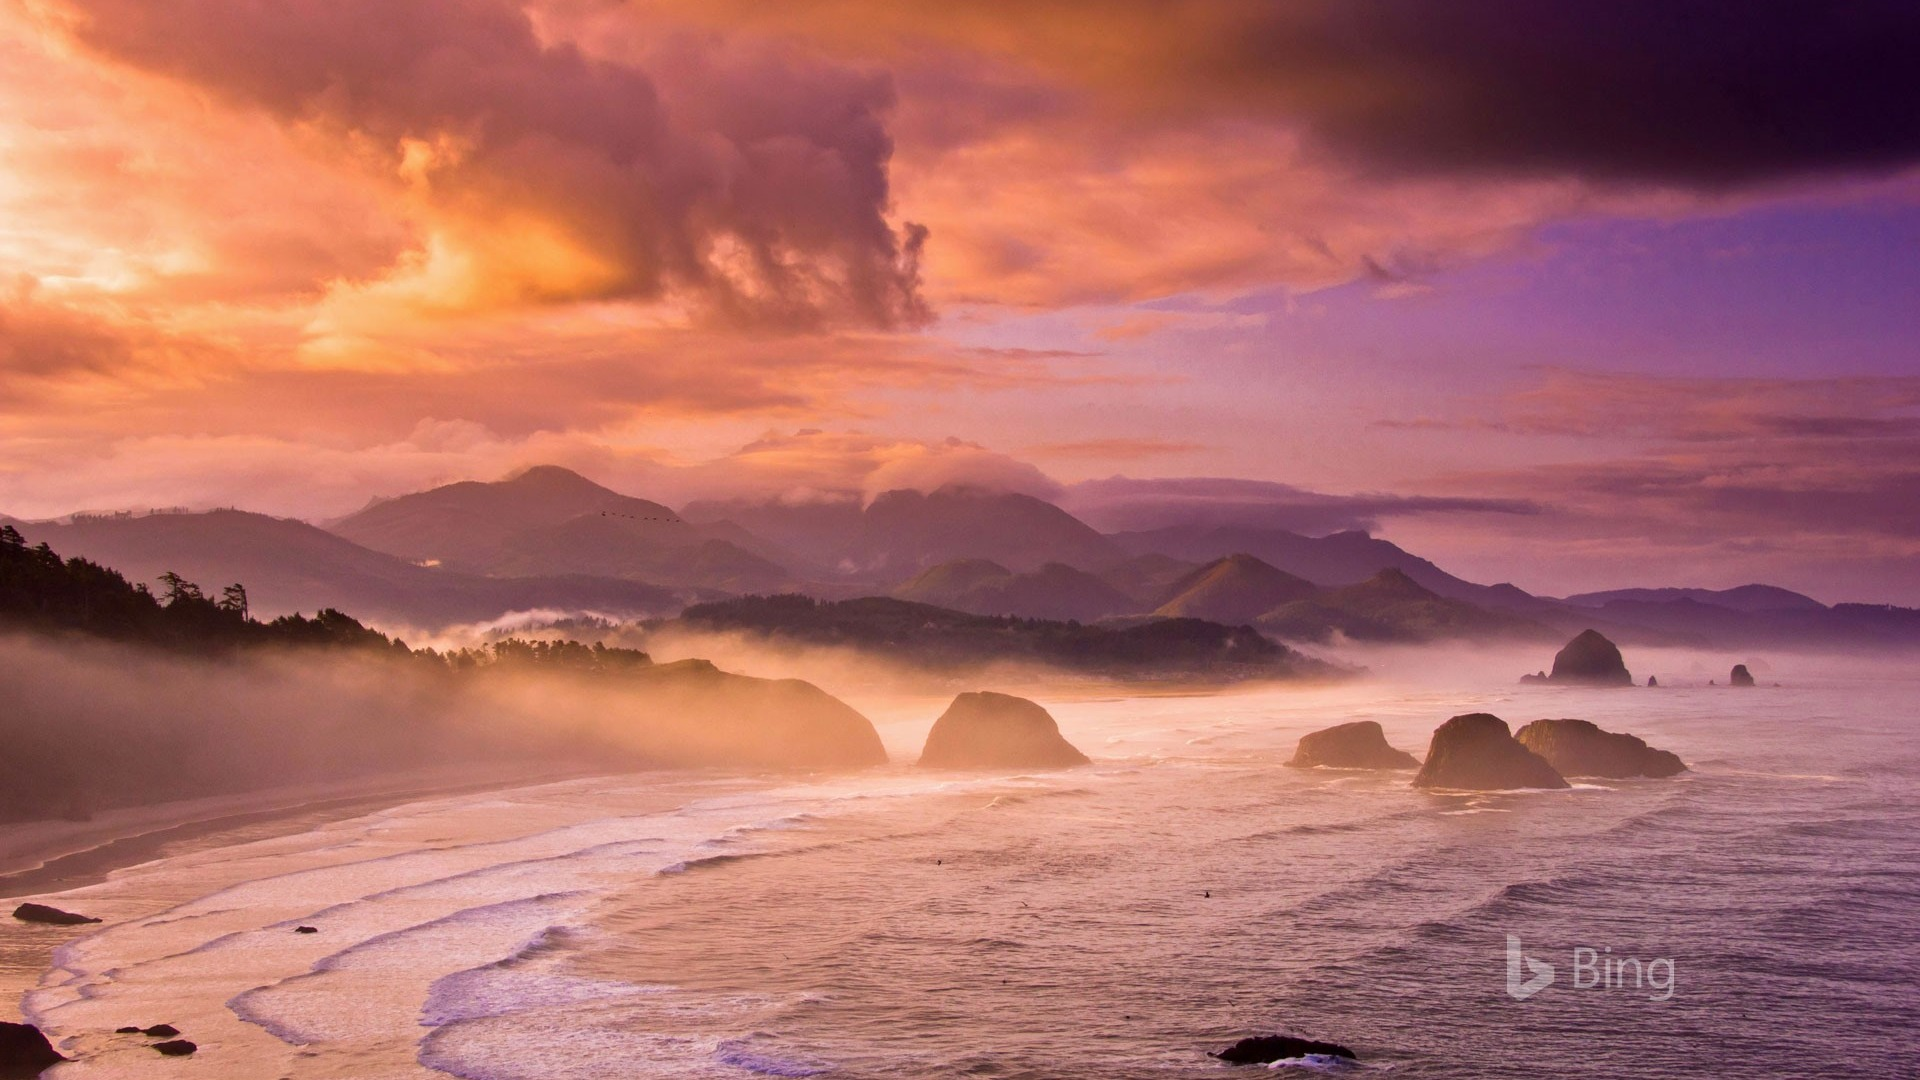 Iphone X Wallpaper For Note 8 Sunset Beach Oregon State Bing Wallpaper 2018 Preview